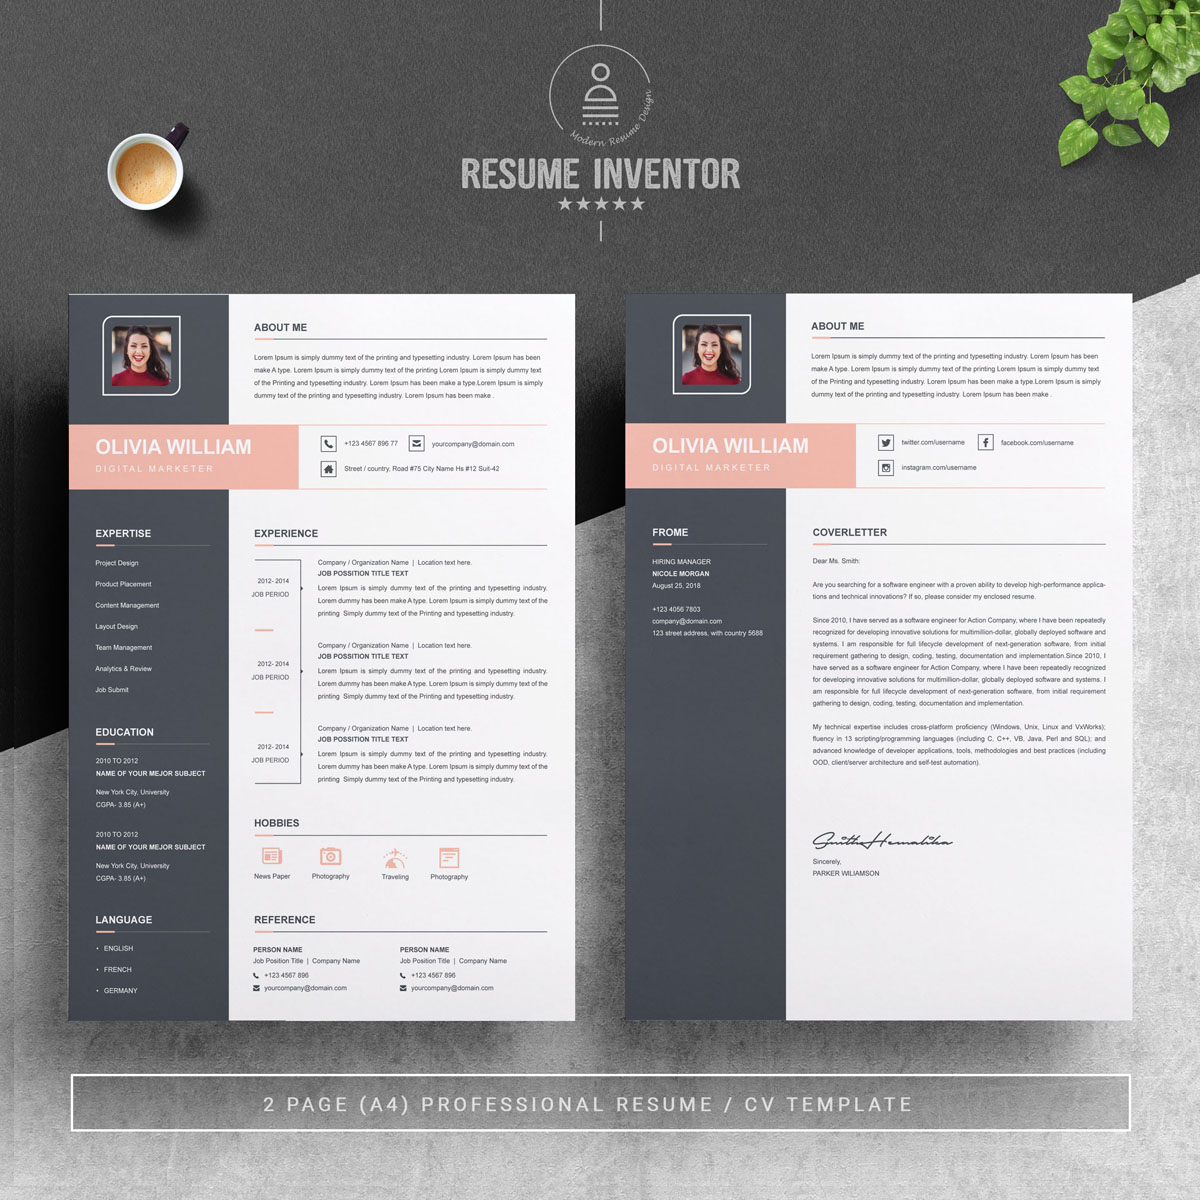 https://s3.tmimgcdn.com/templates/25423/scr/1564412082097_02_2%20Pages%20Free%20Resume%20Design%20Template.jpg